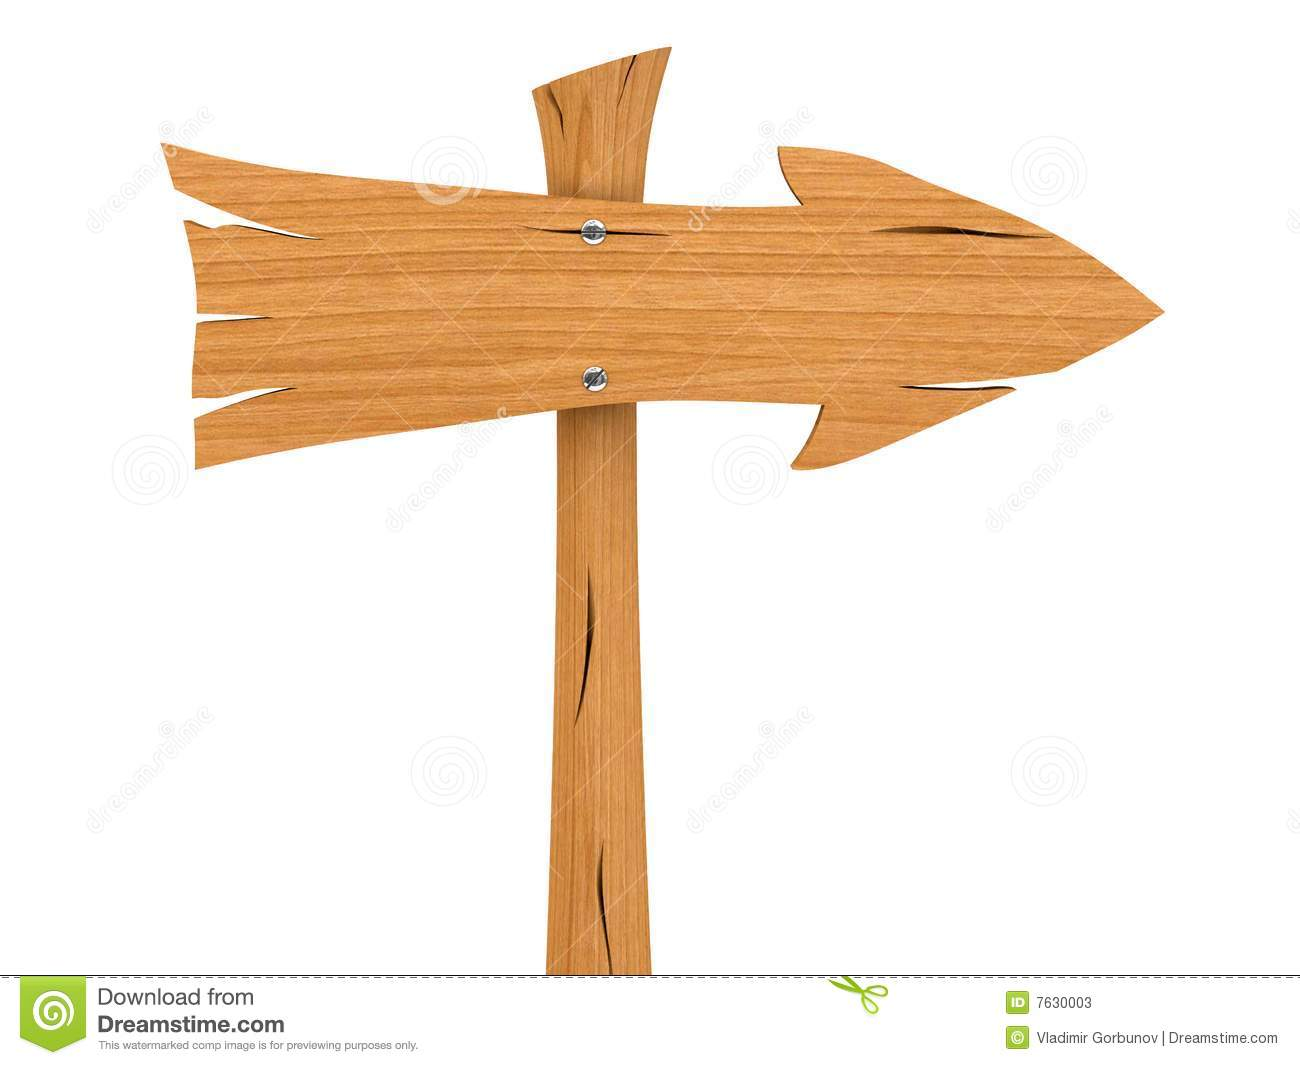 Direction board clipart.